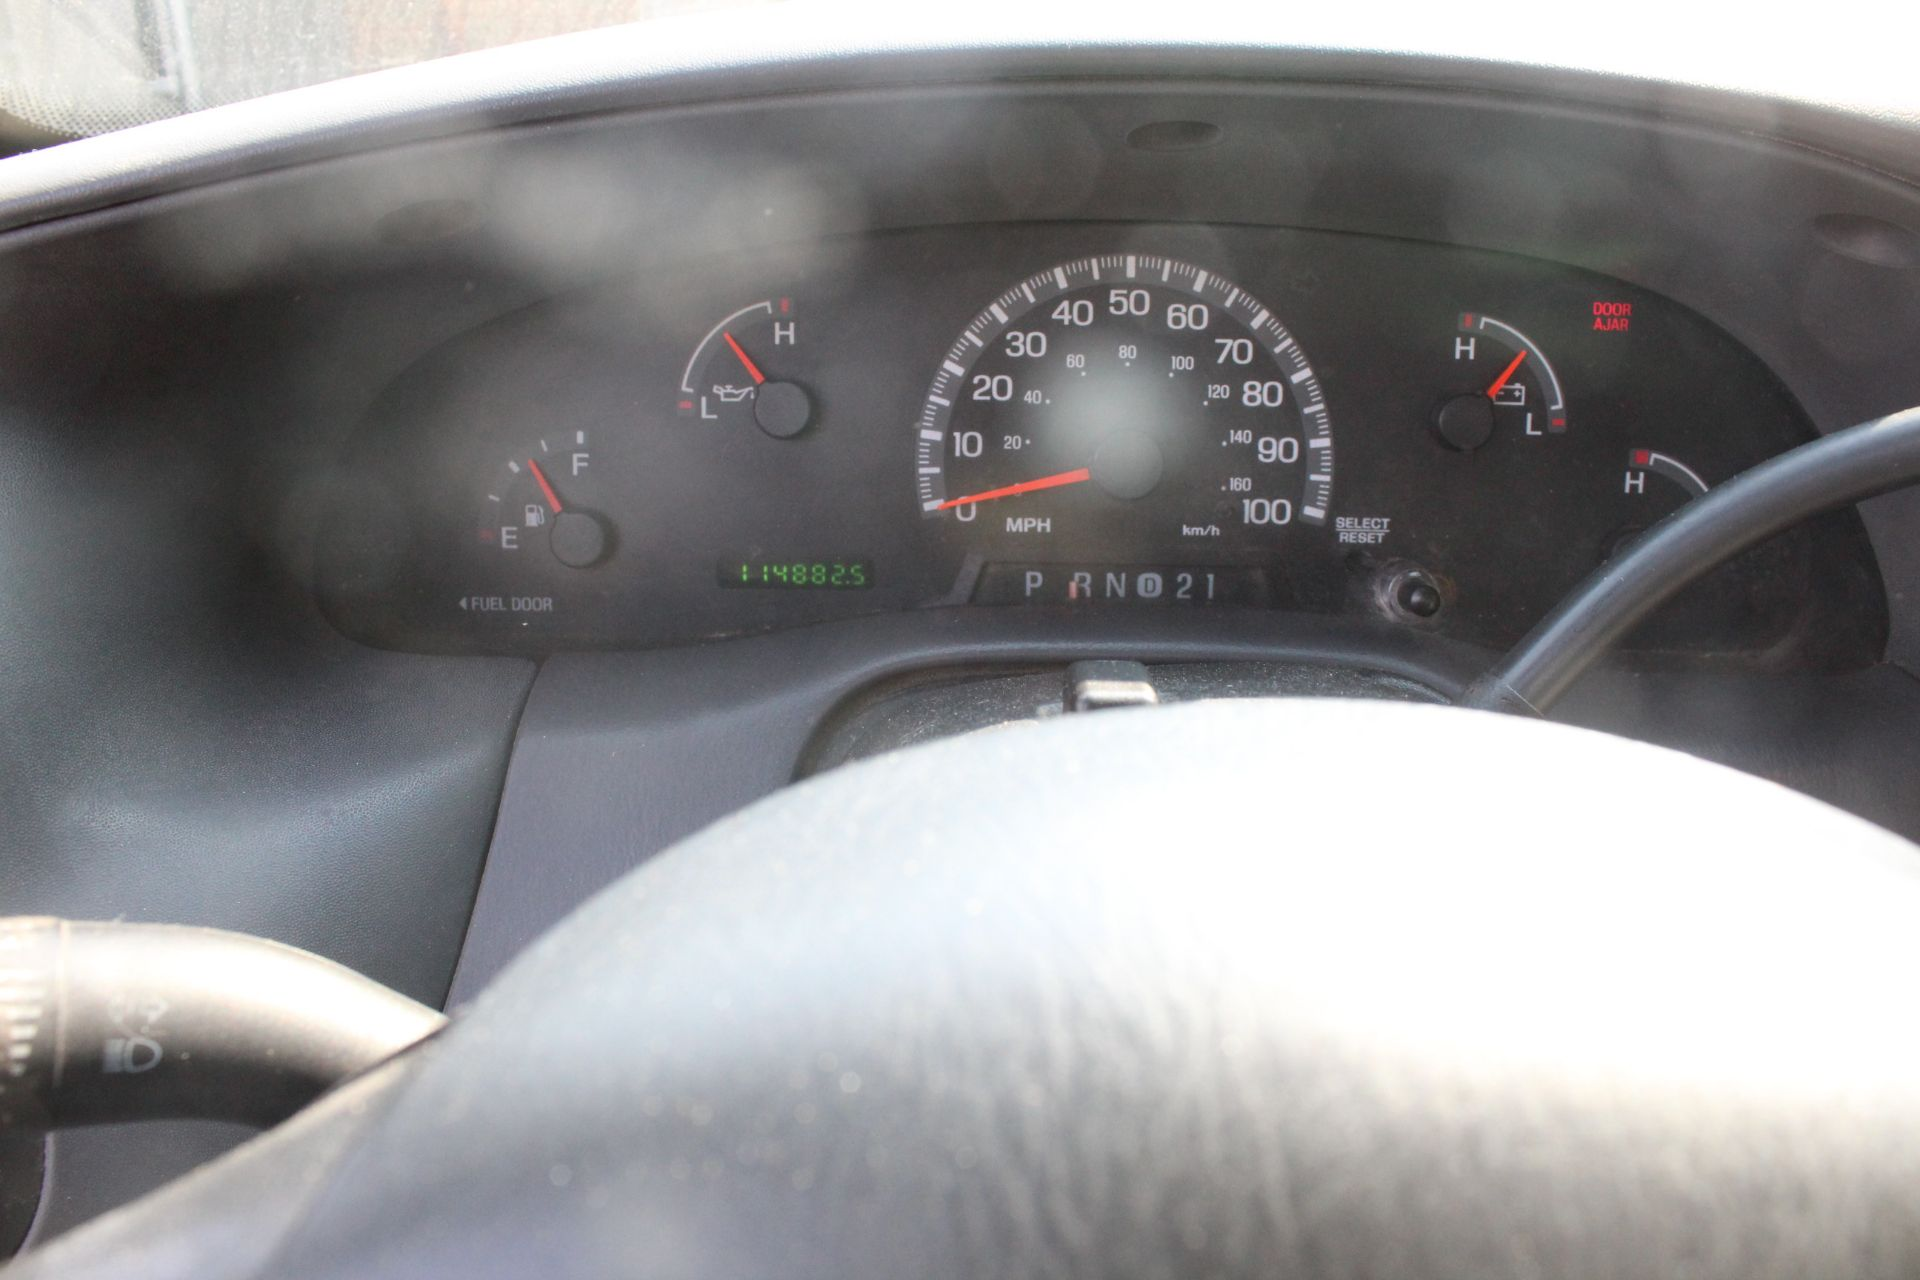 2001 FORD F150 7700 SERIES STANDARD CAB PICKUP TRUCK, 8' BED, 114, 882 MILES SHOWN ON ODOMETER - Image 5 of 8